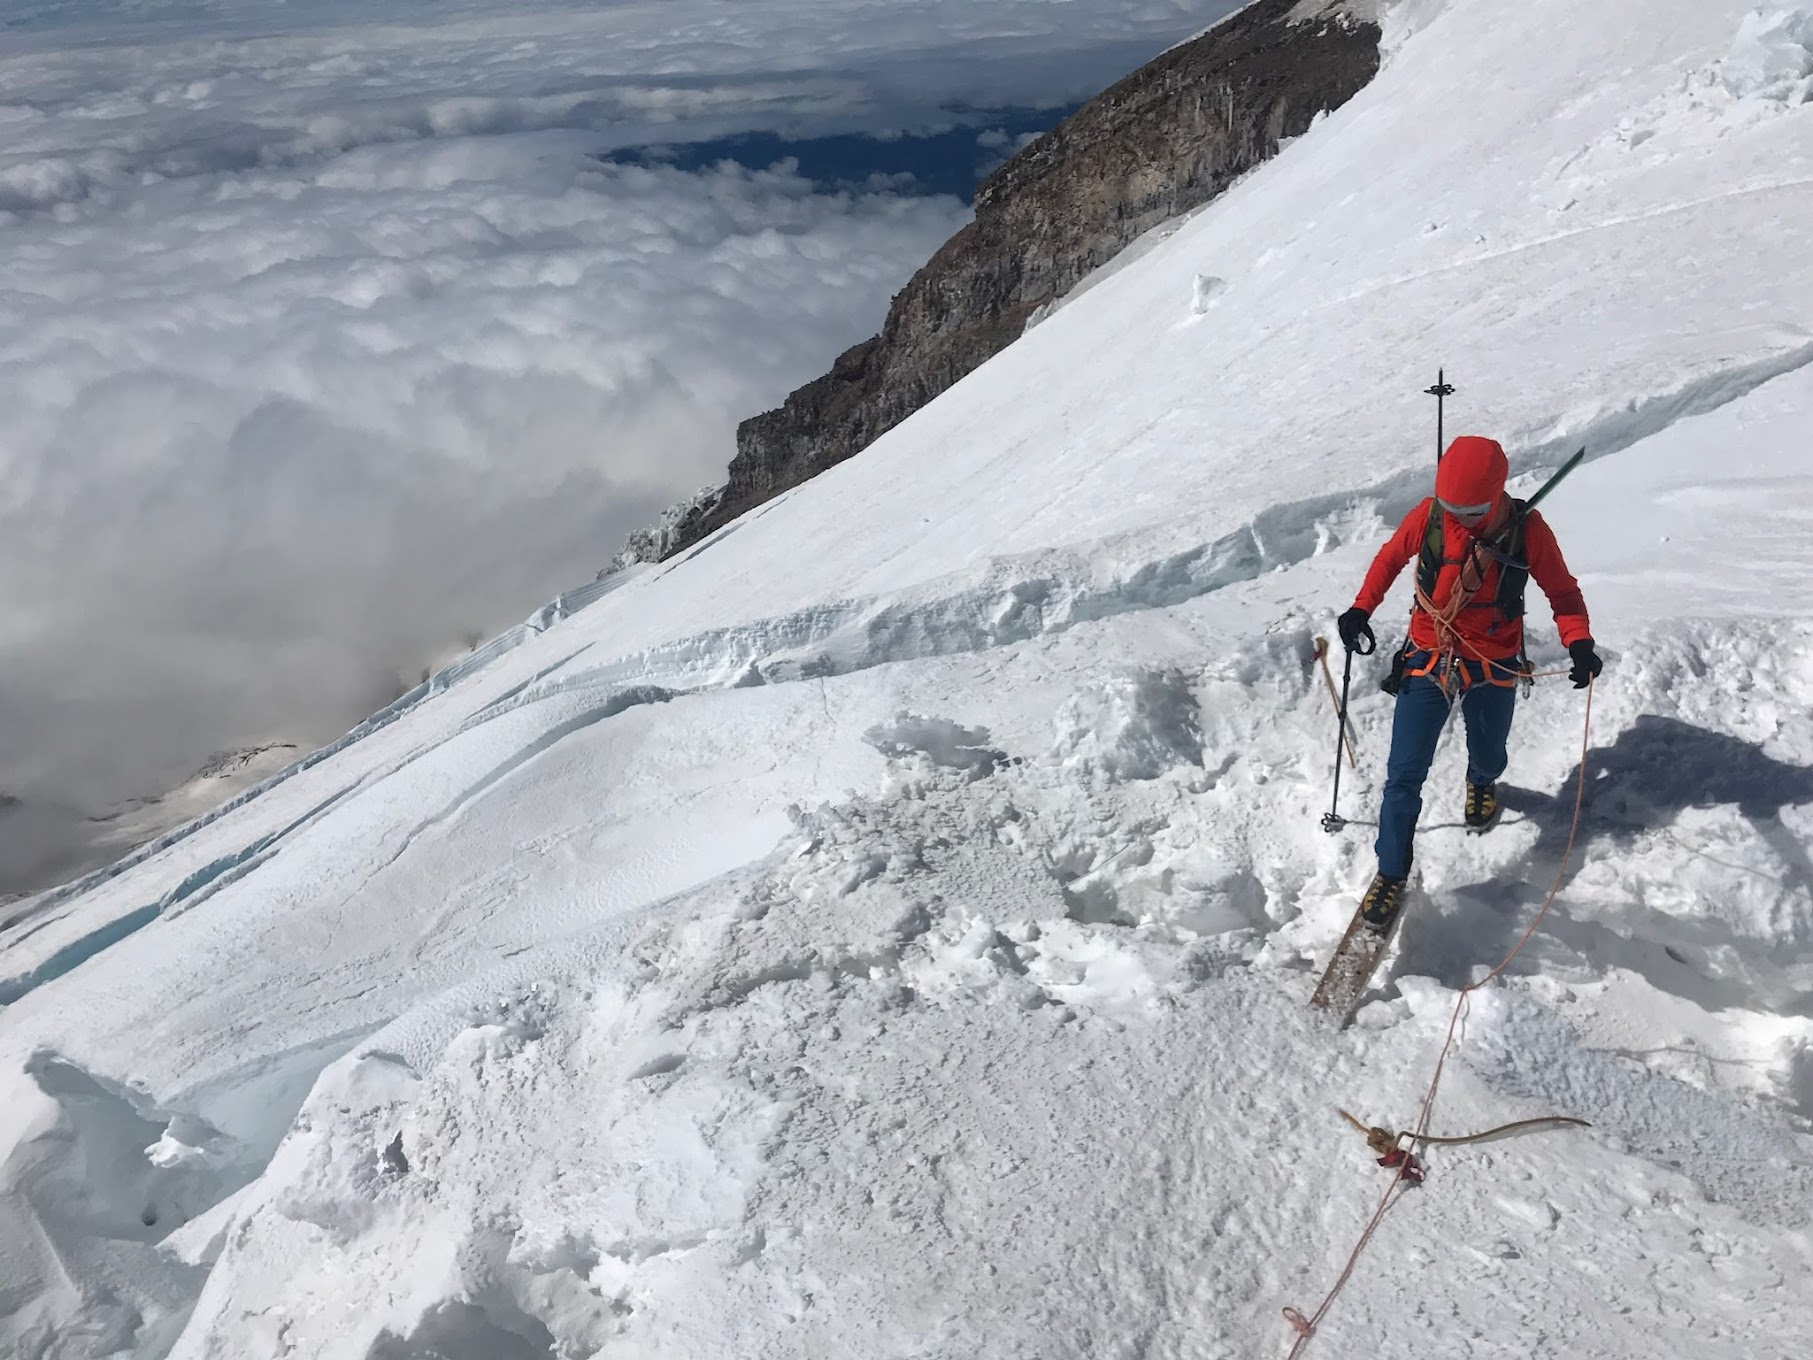 Stepping across Crevasses